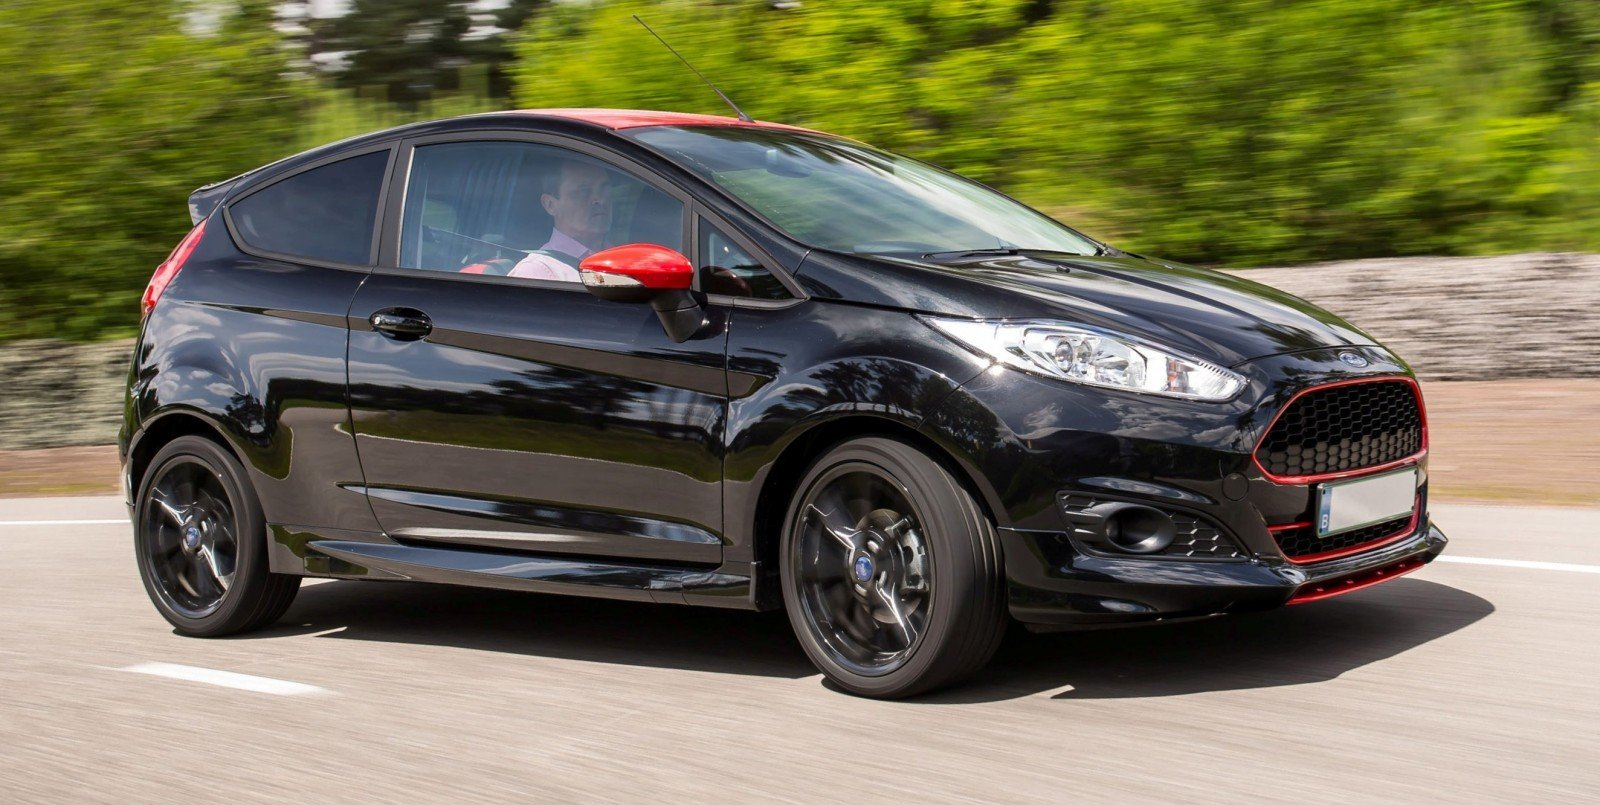 2014 ford fiesta red edition and fiesta black edition announced for uk 19. Black Bedroom Furniture Sets. Home Design Ideas